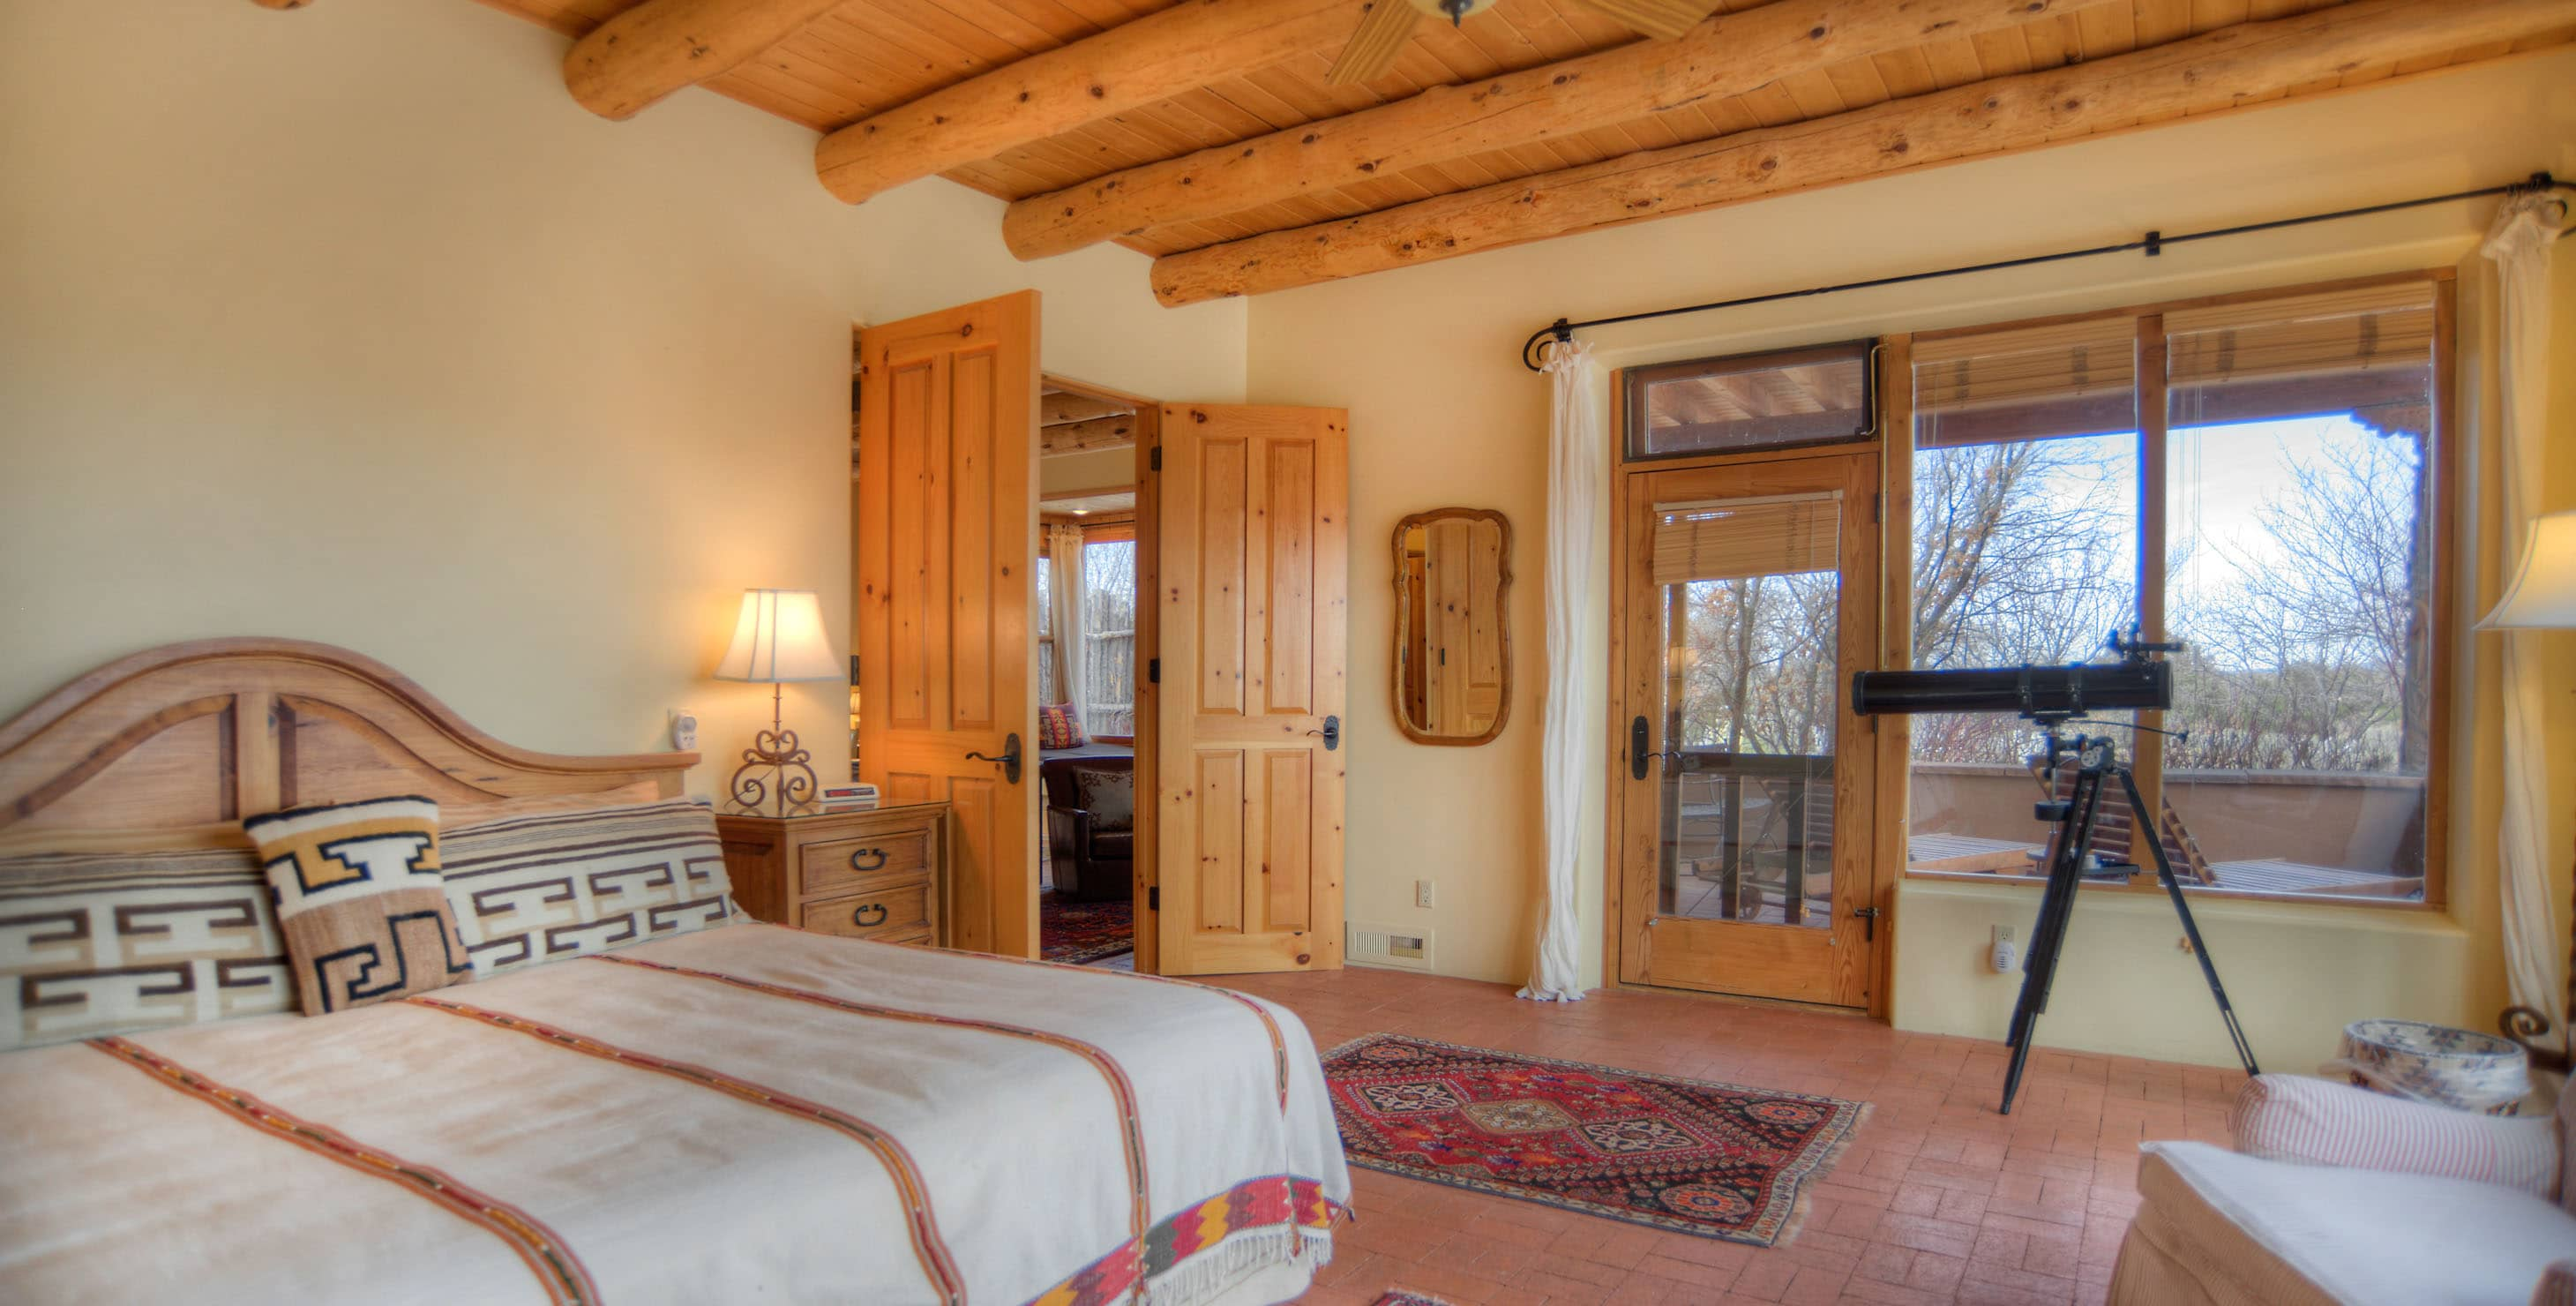 Spacious bedroom with king bed, seating area, double doors, and a doorway to a private patio